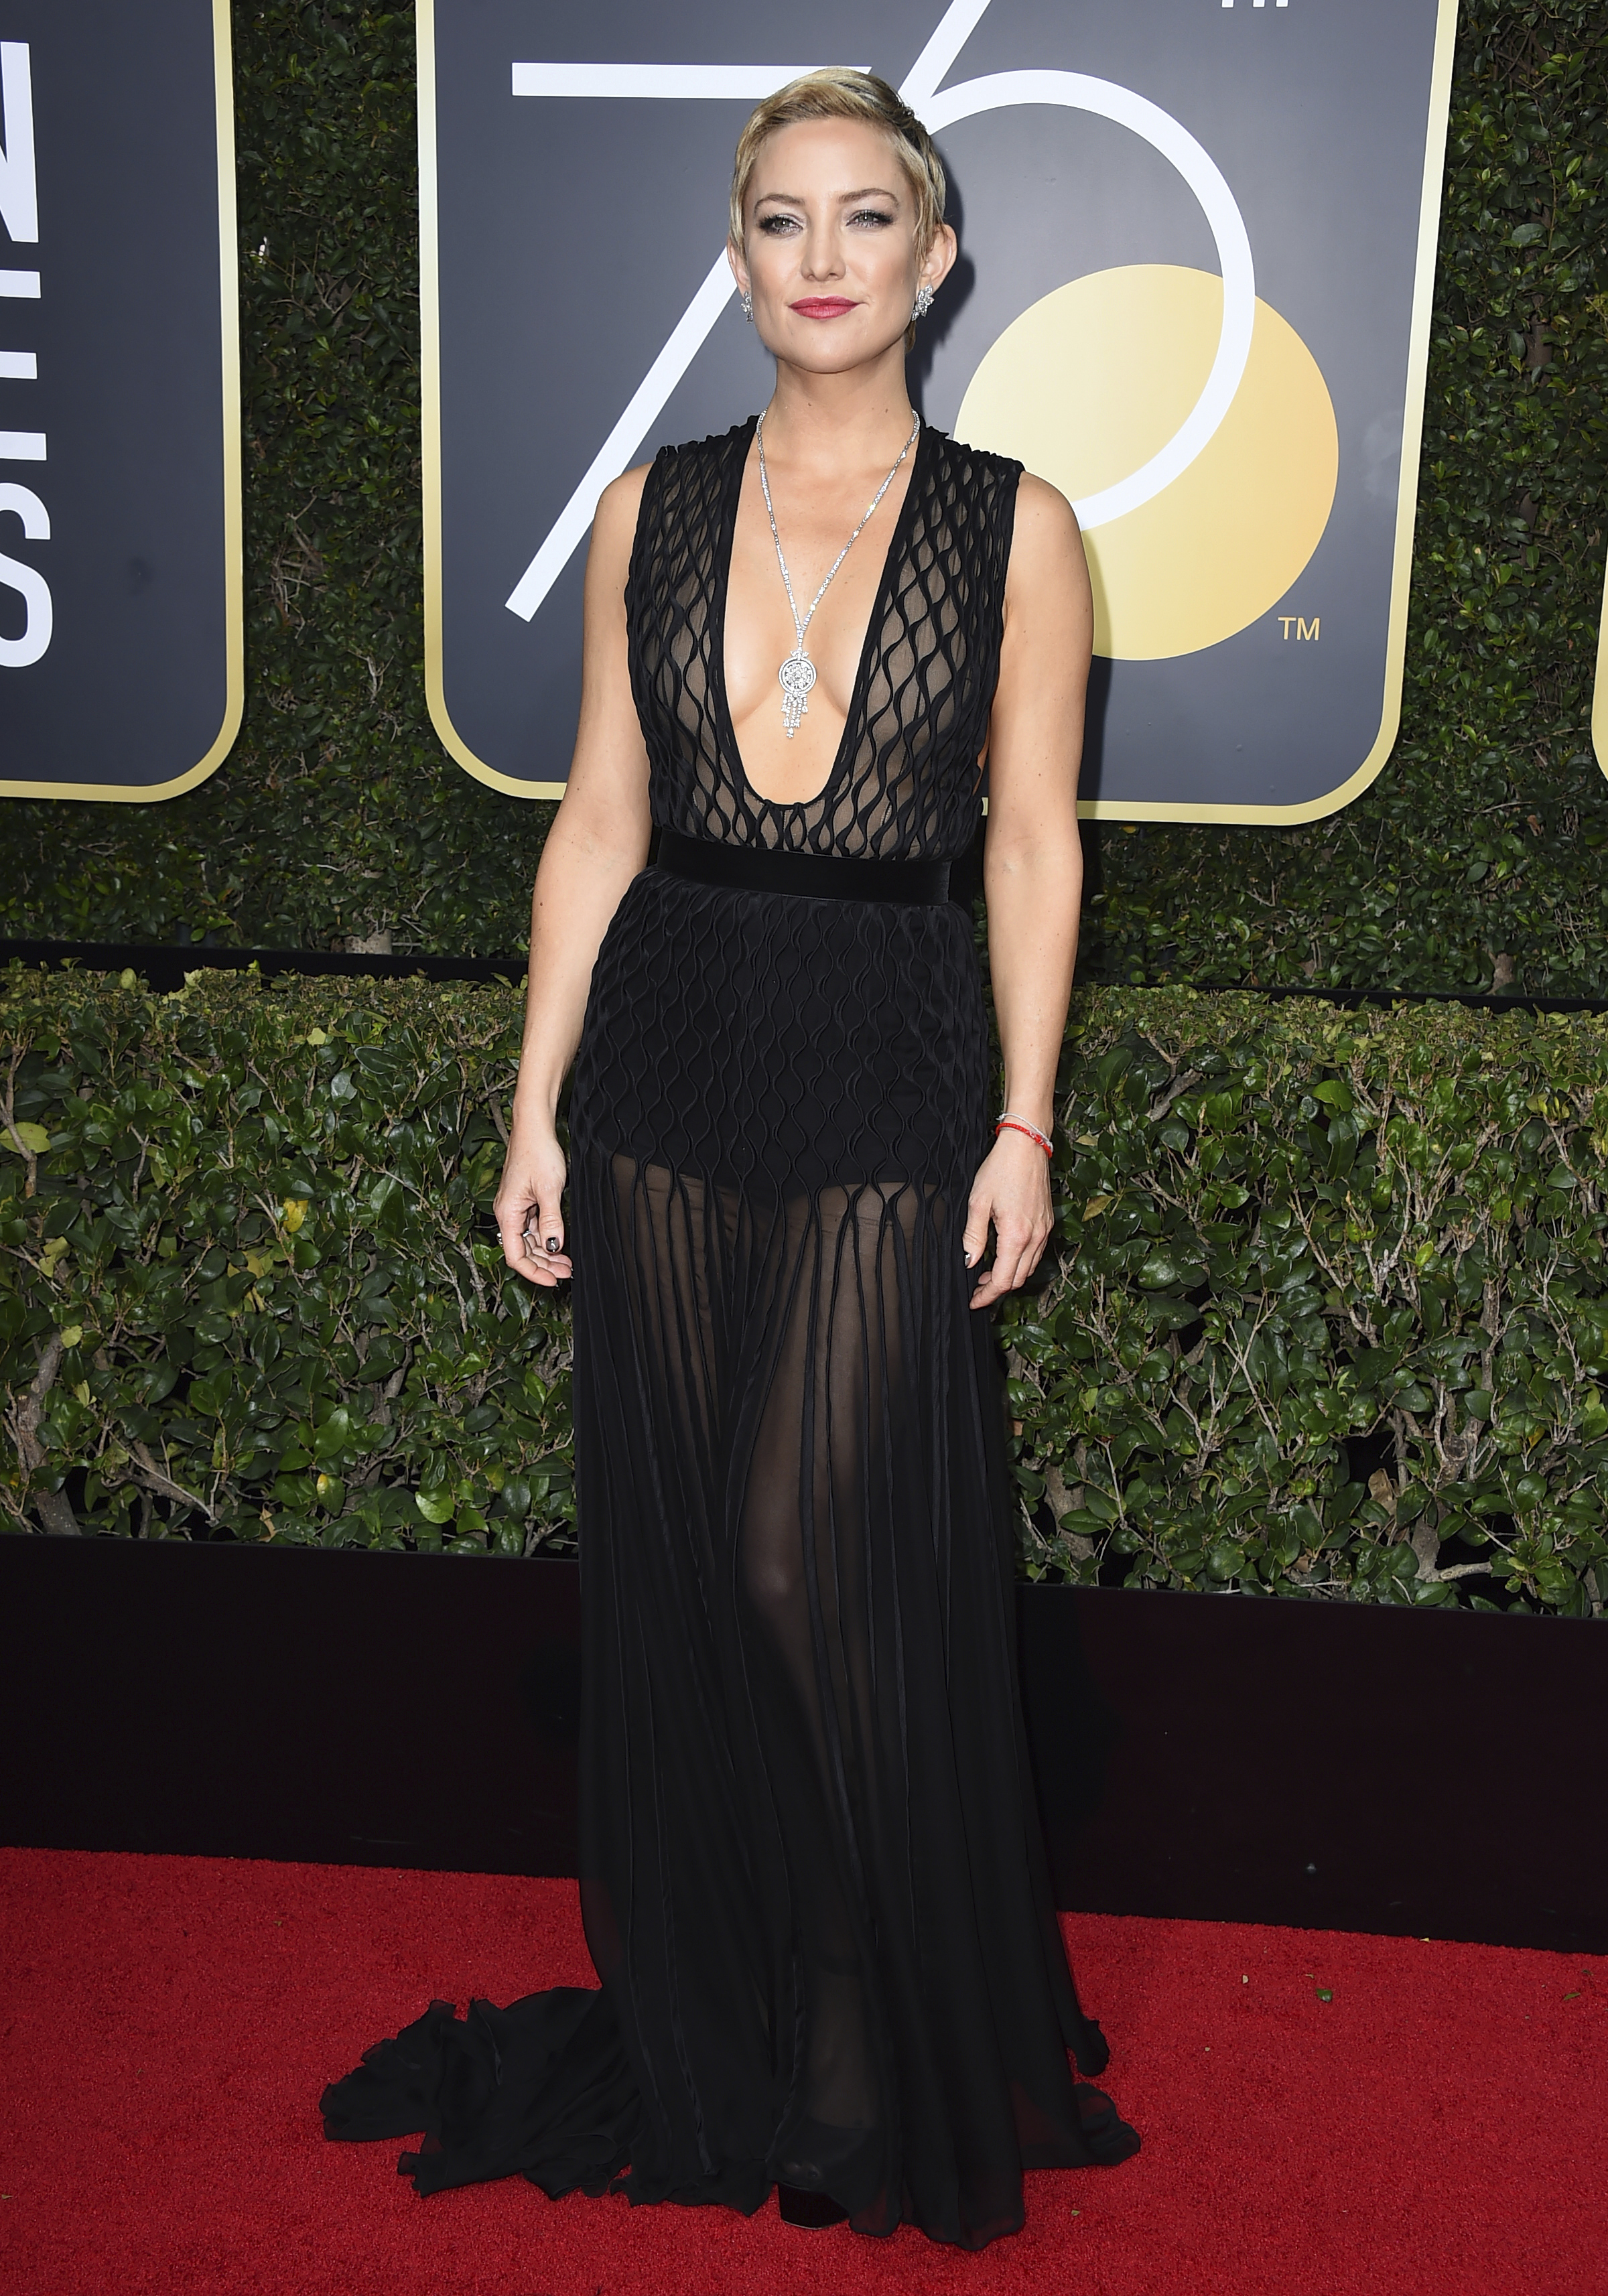 <div class='meta'><div class='origin-logo' data-origin='AP'></div><span class='caption-text' data-credit='Jordan Strauss/Invision/AP'>Kate Hudson arrives at the 75th annual Golden Globe Awards at the Beverly Hilton Hotel on Sunday, Jan. 7, 2018, in Beverly Hills, Calif.</span></div>